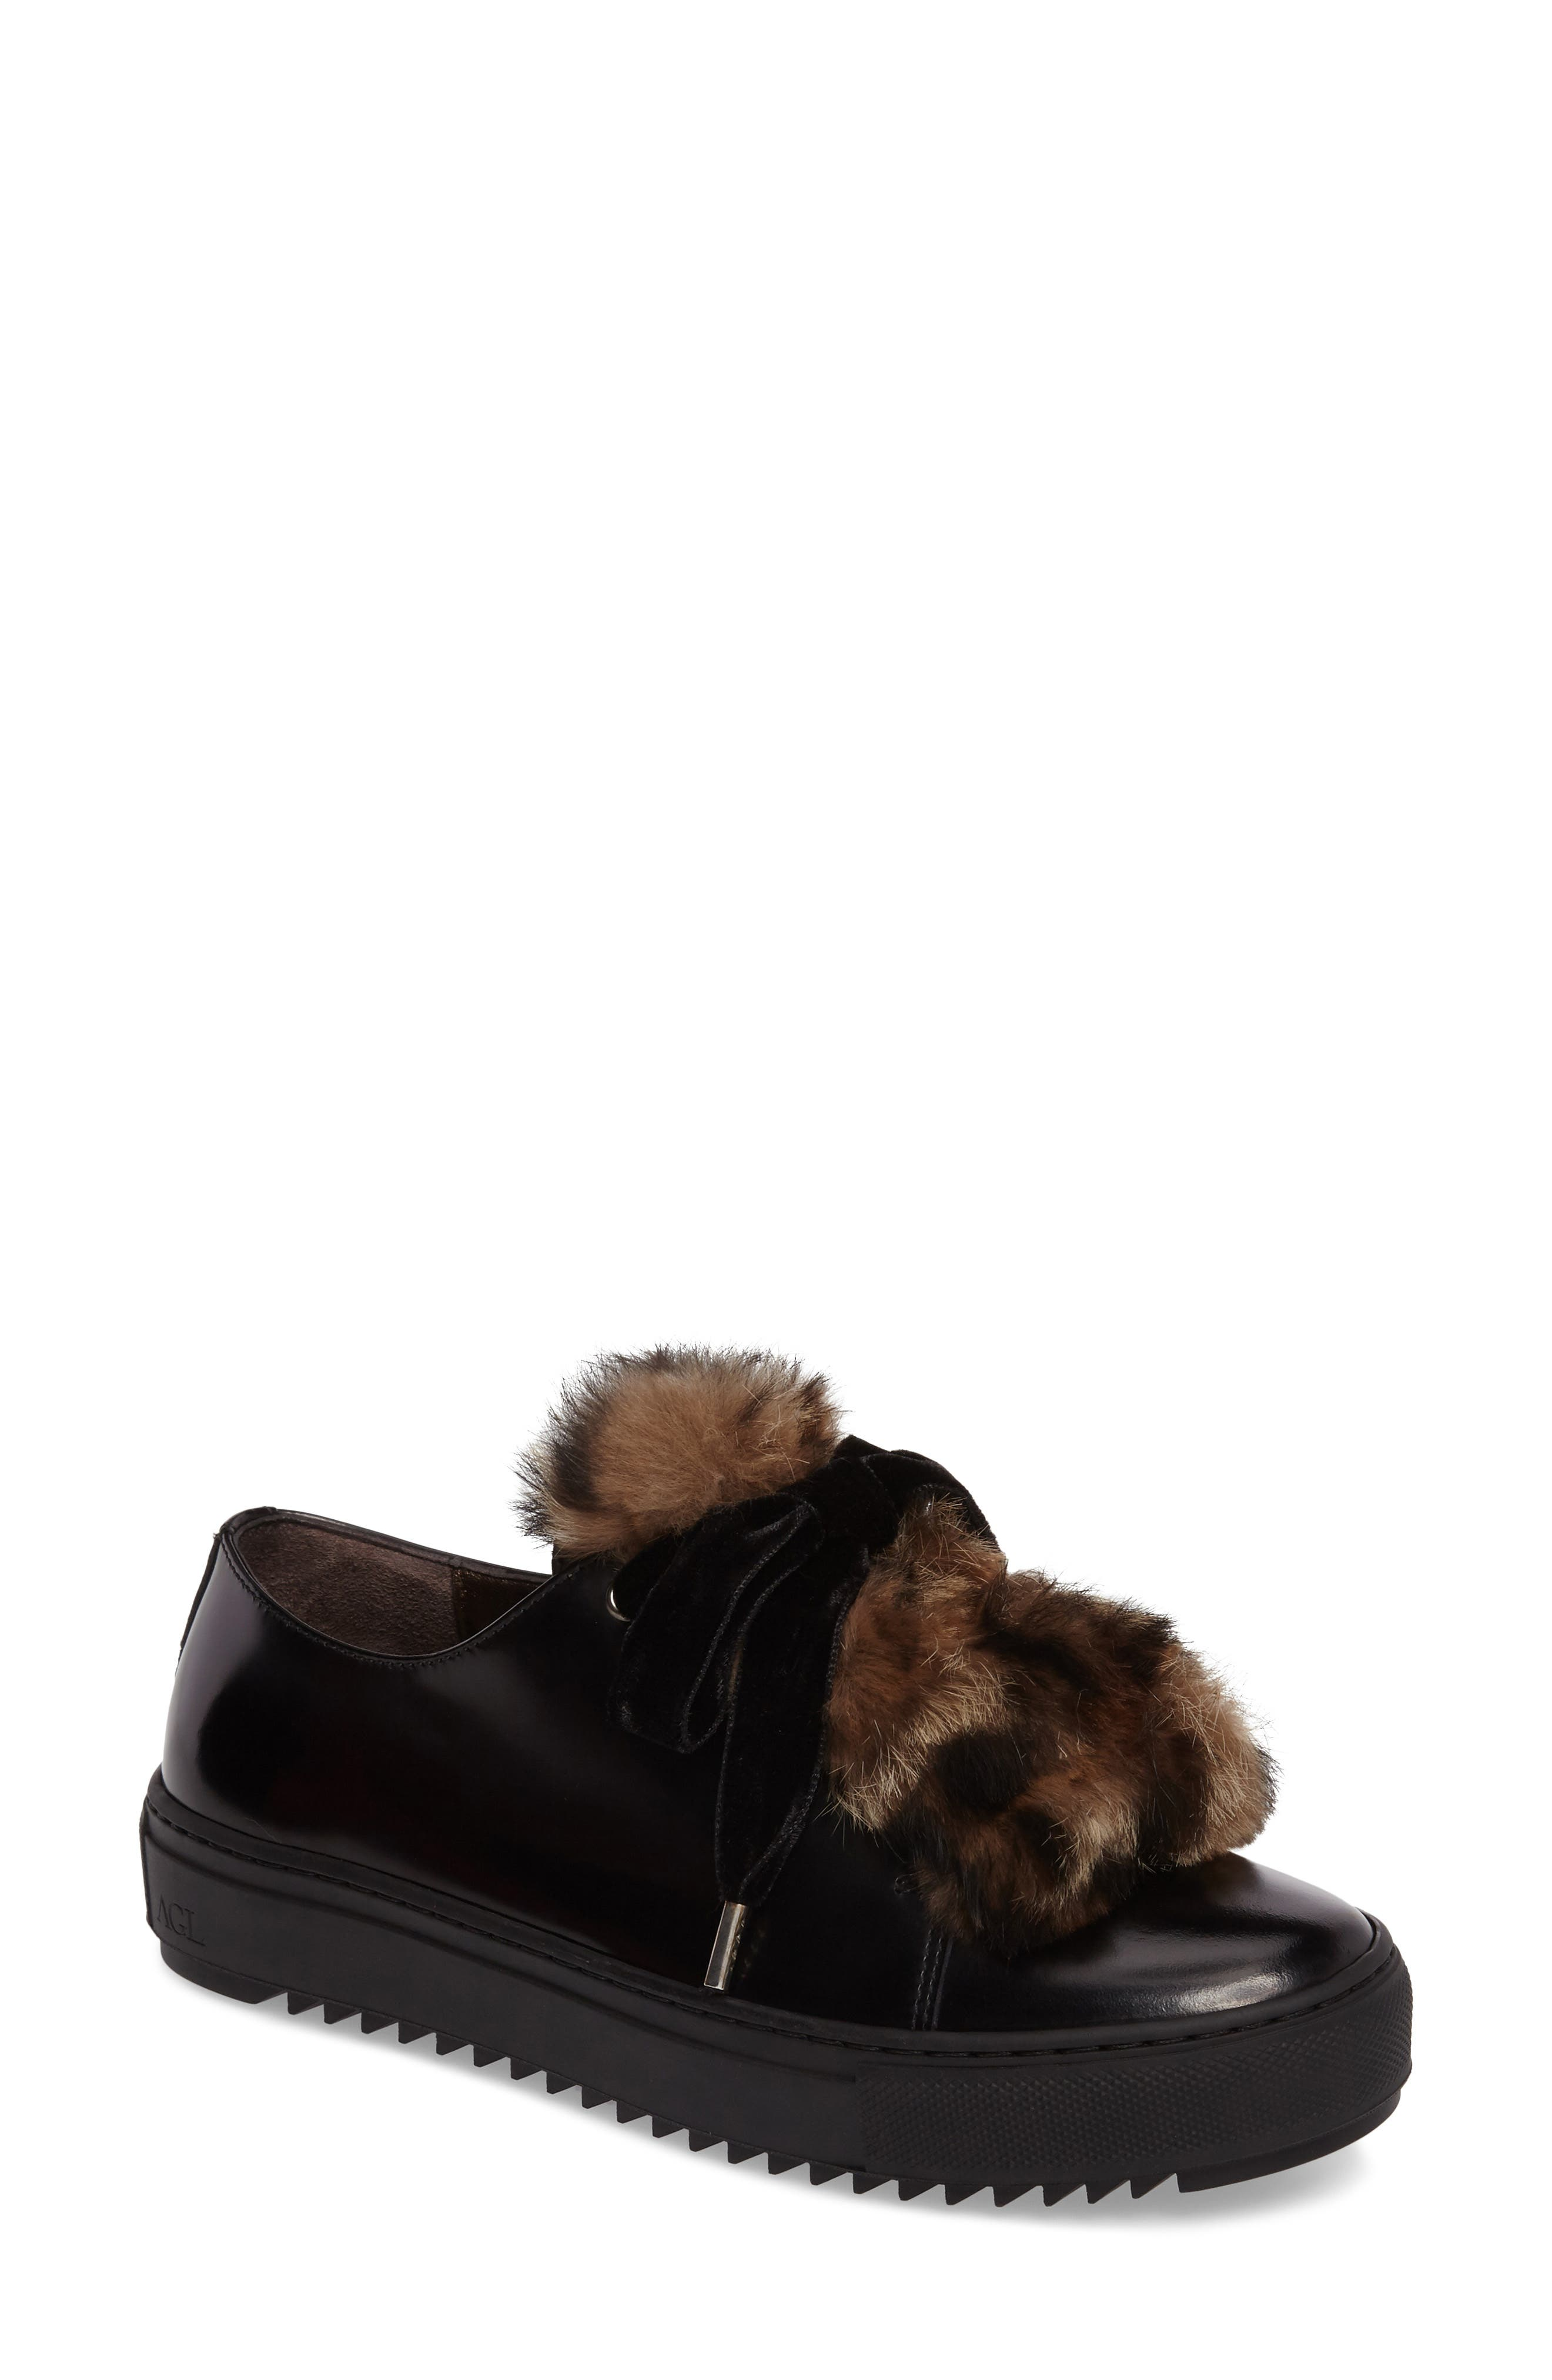 AGL Fluff Genuine Rabbit Fur Sneaker (Women)